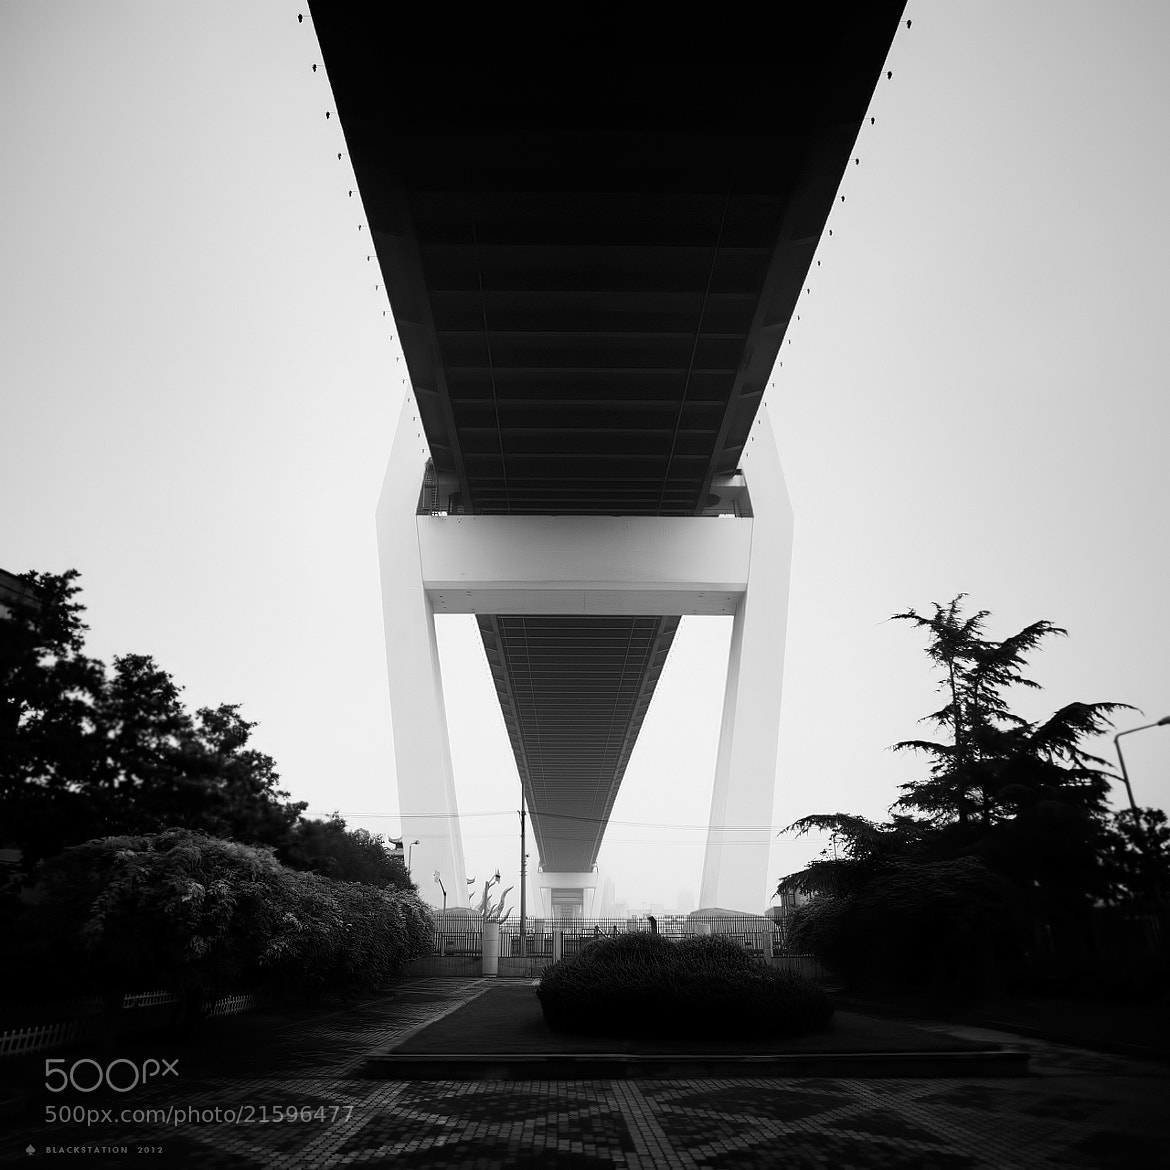 Photograph under the bridge by Black Station on 500px